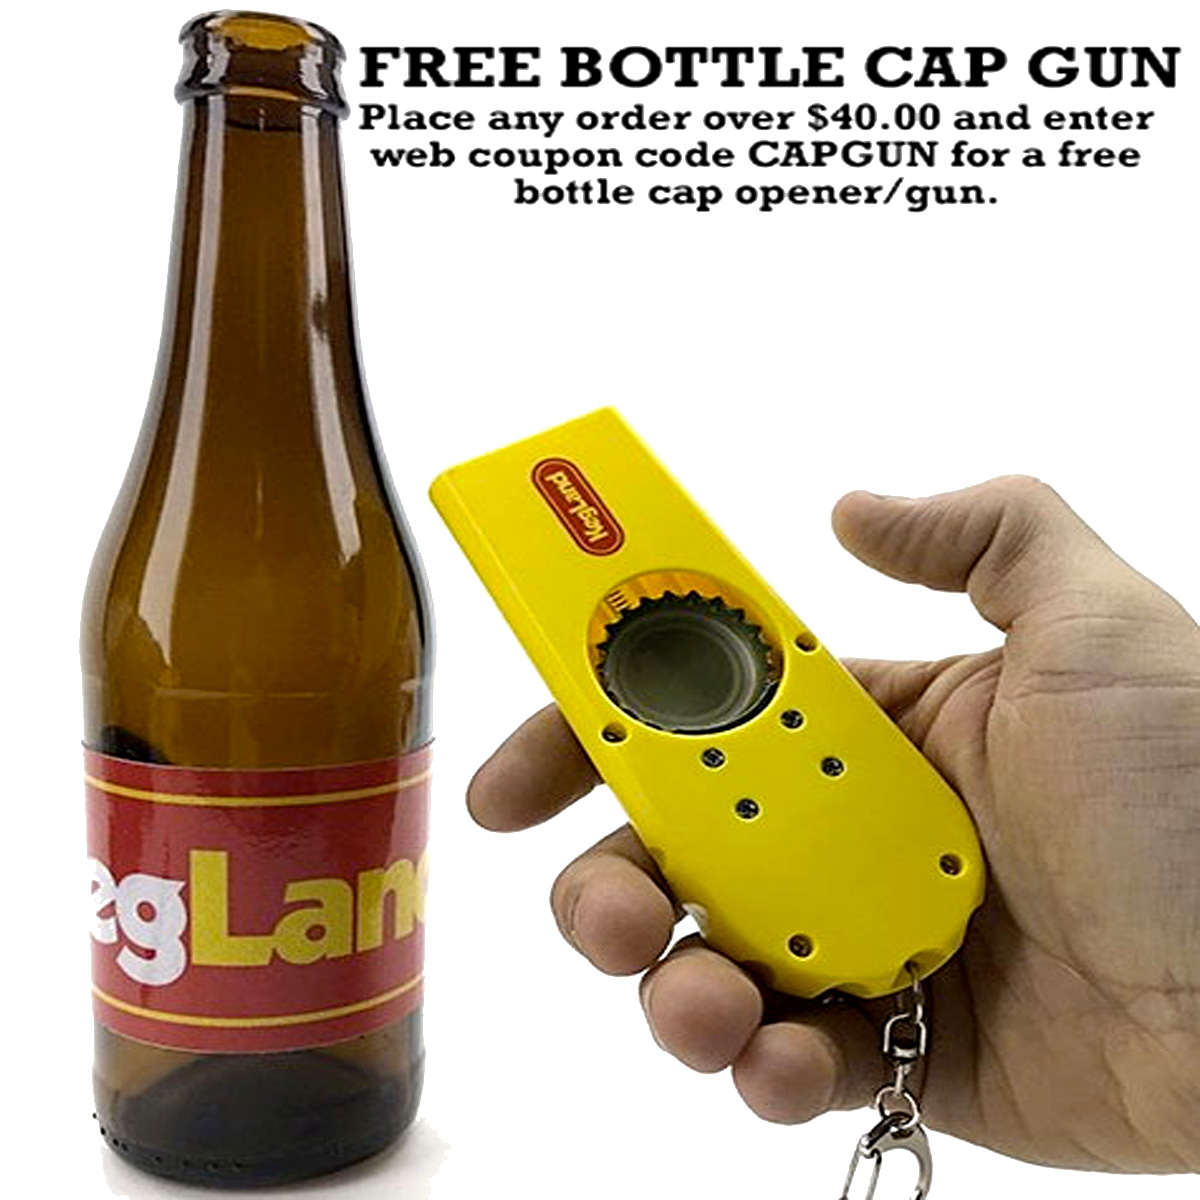 Get a Free Beer Cap Gun with this WilliamsBrewing.com Promo Code